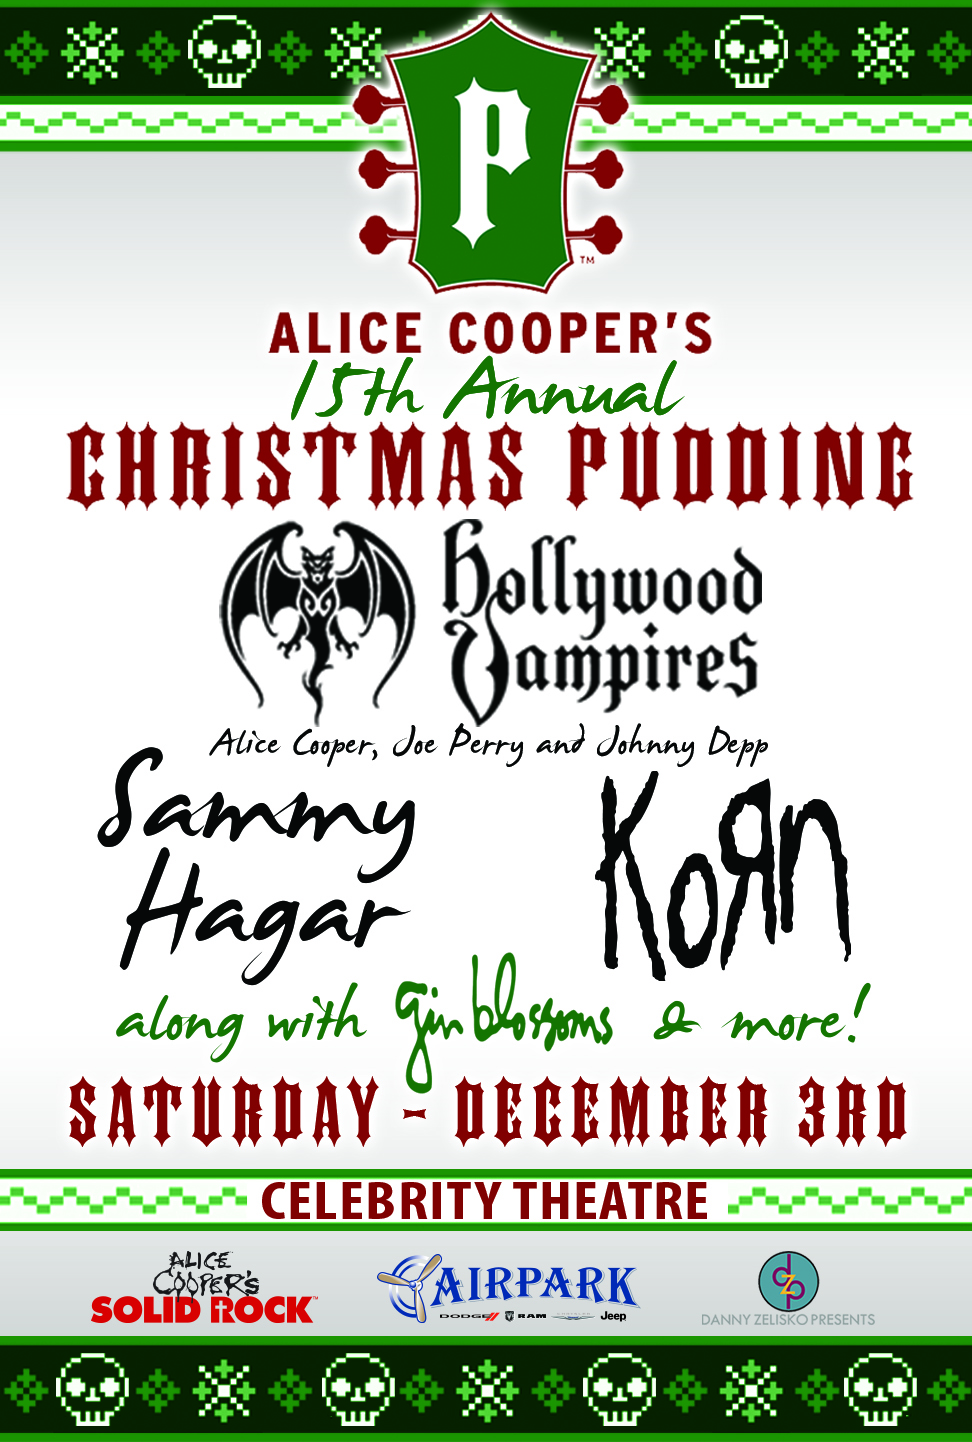 alice cooper christmas pudding 2013 meet and greet